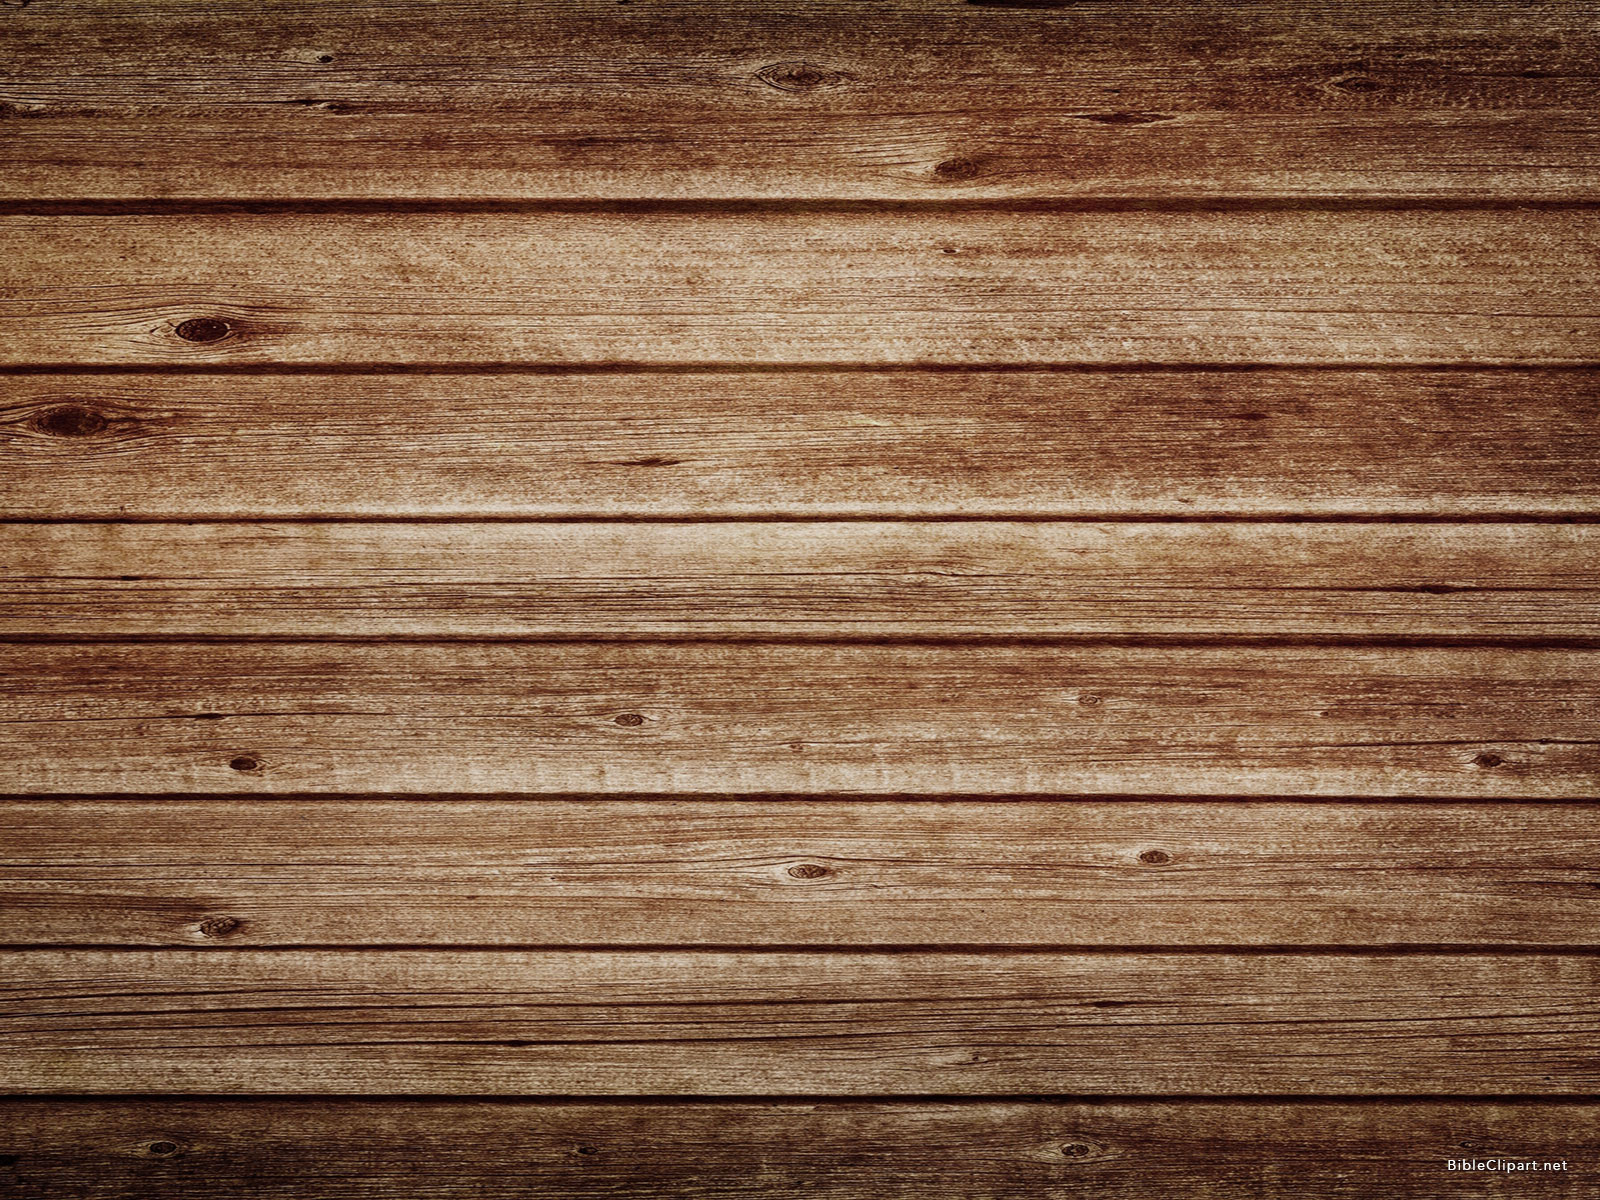 Wood Texture For Elevation : Wood panel hd background bible clipart